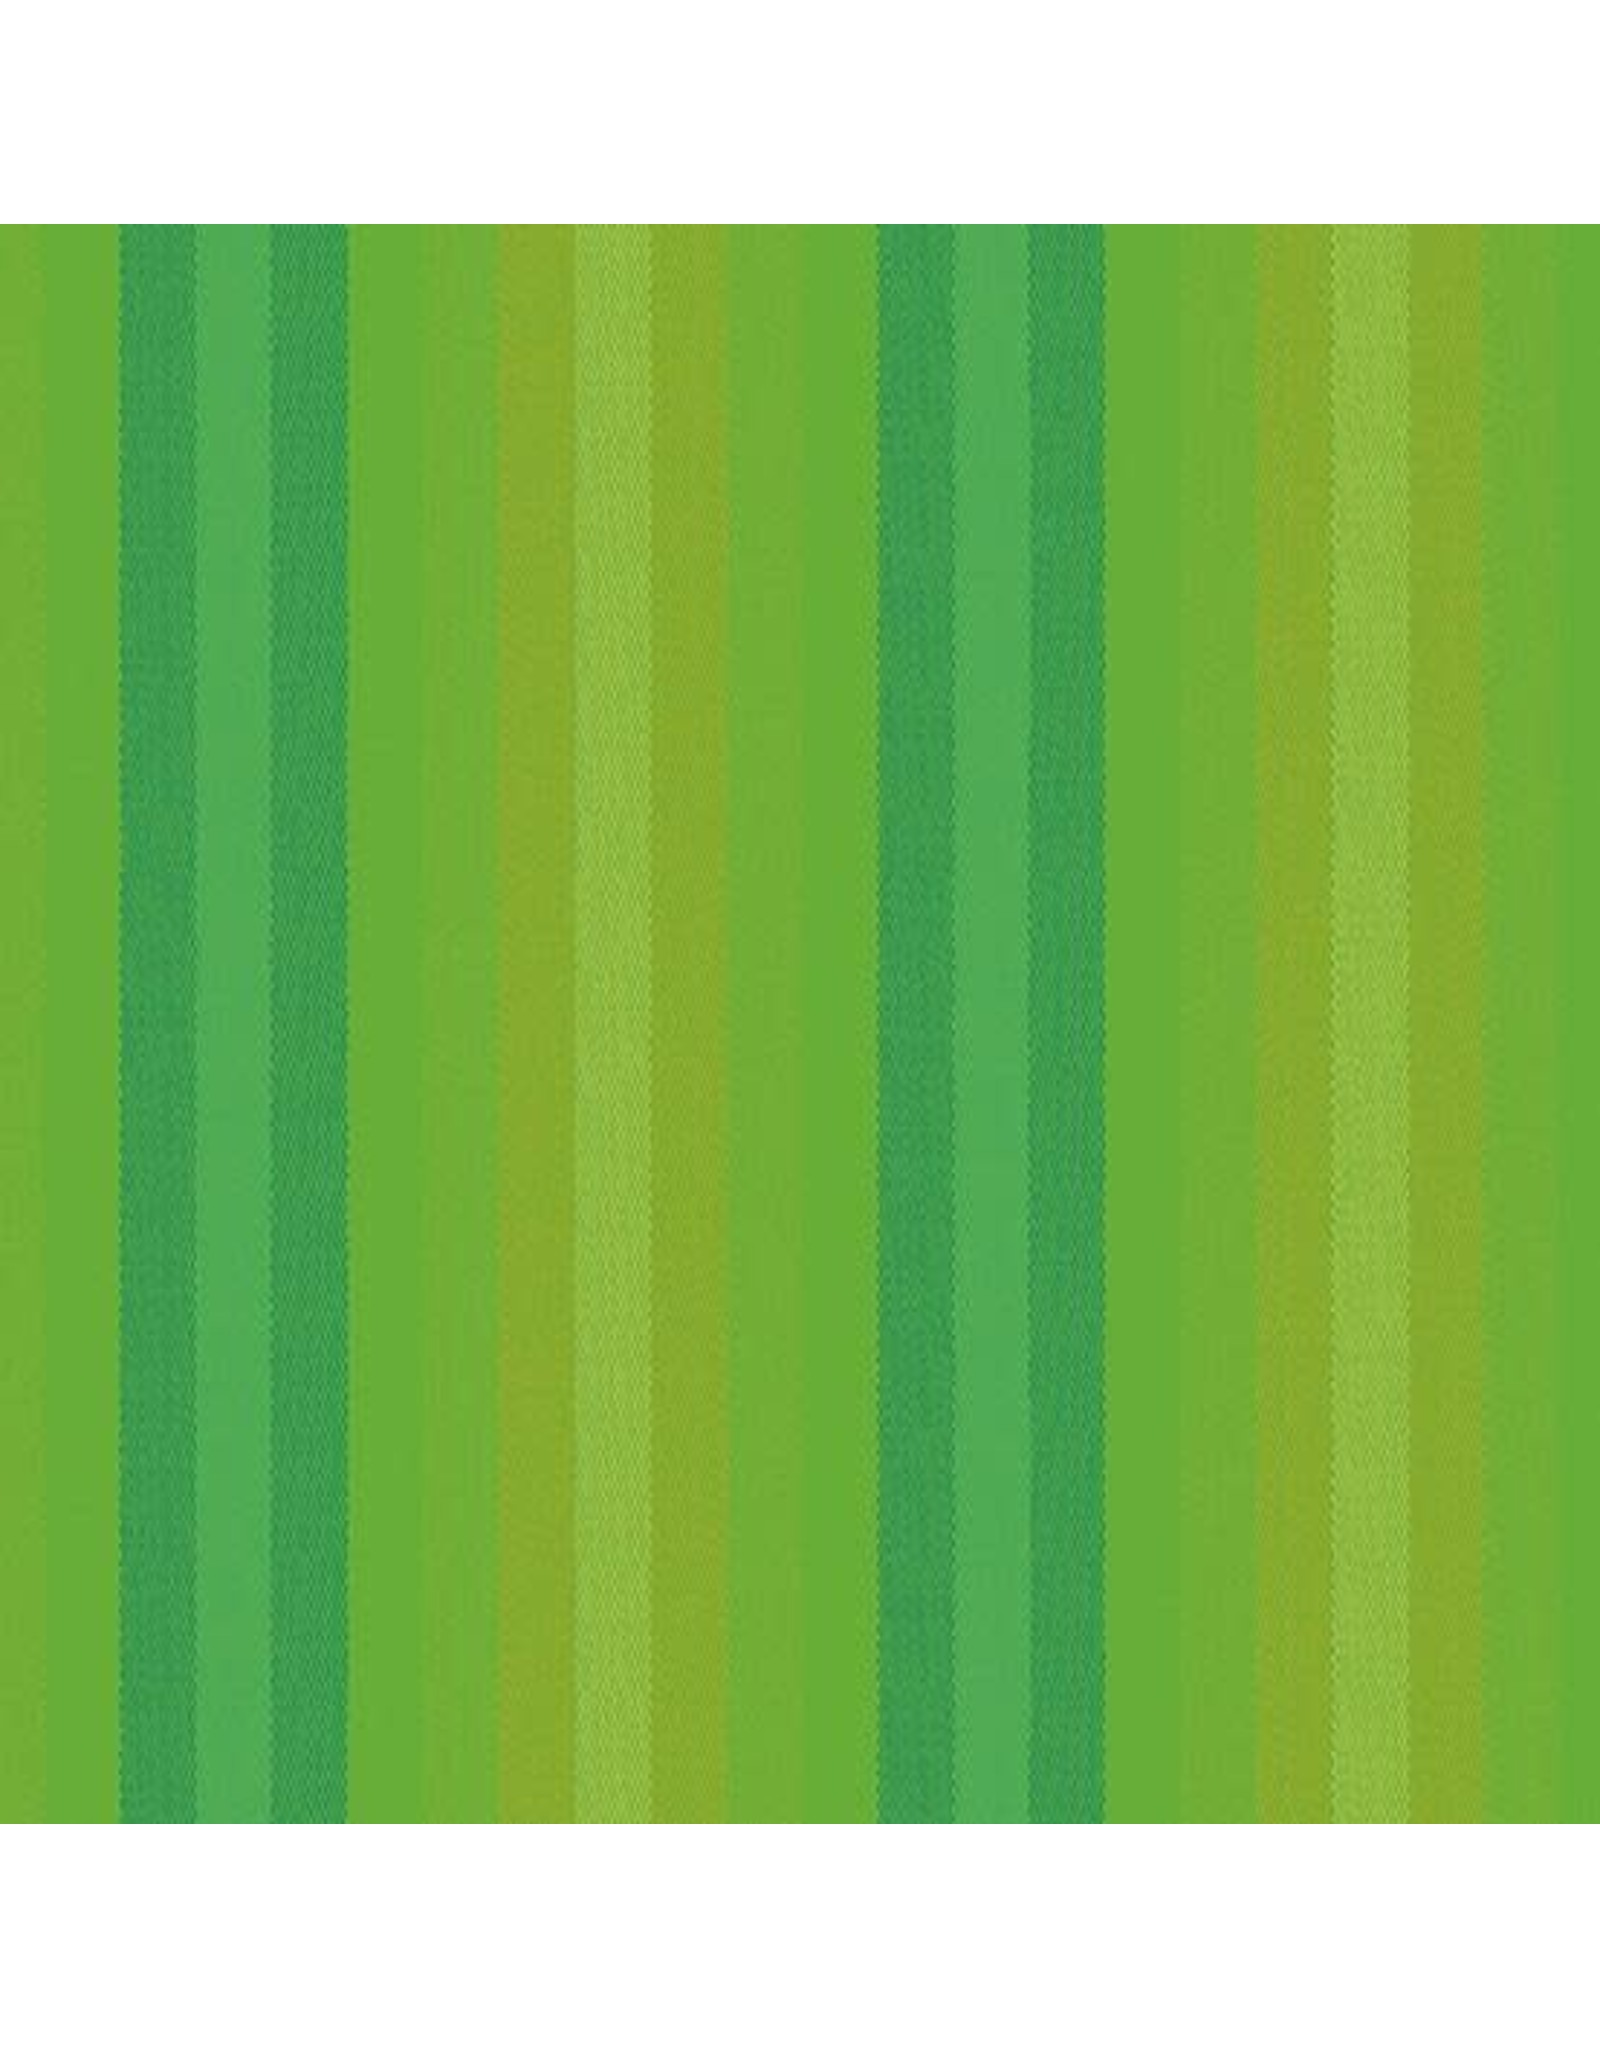 Alison Glass Kaleidoscope Stripes and Plaids, Stripes in Lichen, Fabric Half-Yards